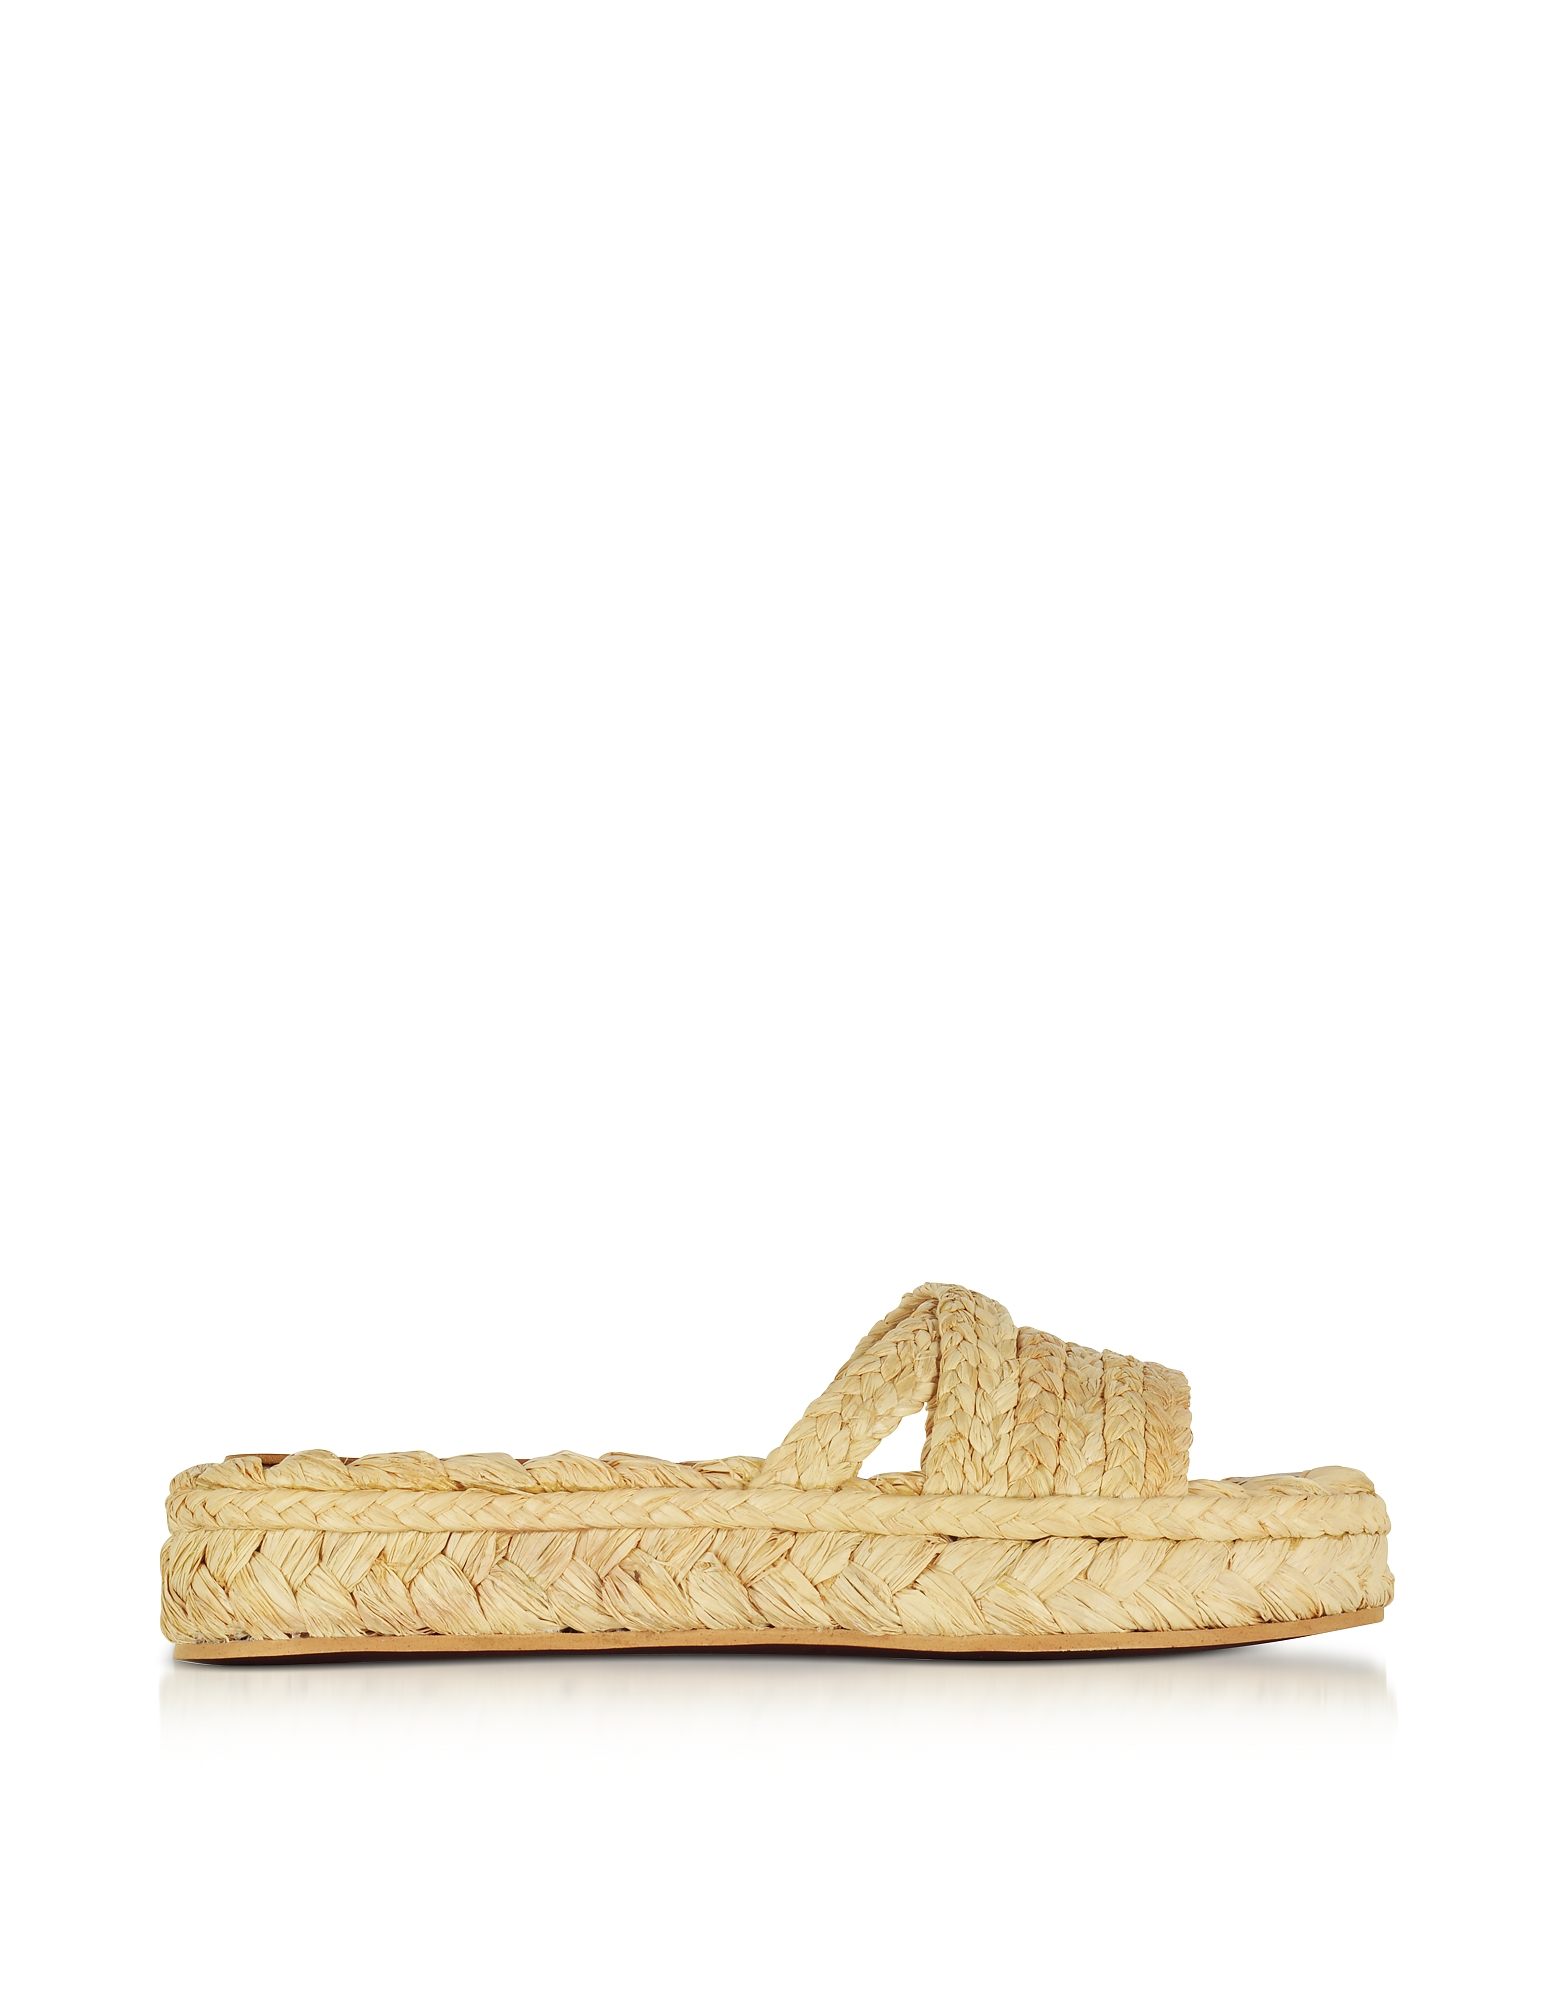 Robert Clergerie Shoes, Idalie Natural Braided Raffia Flat Sandals